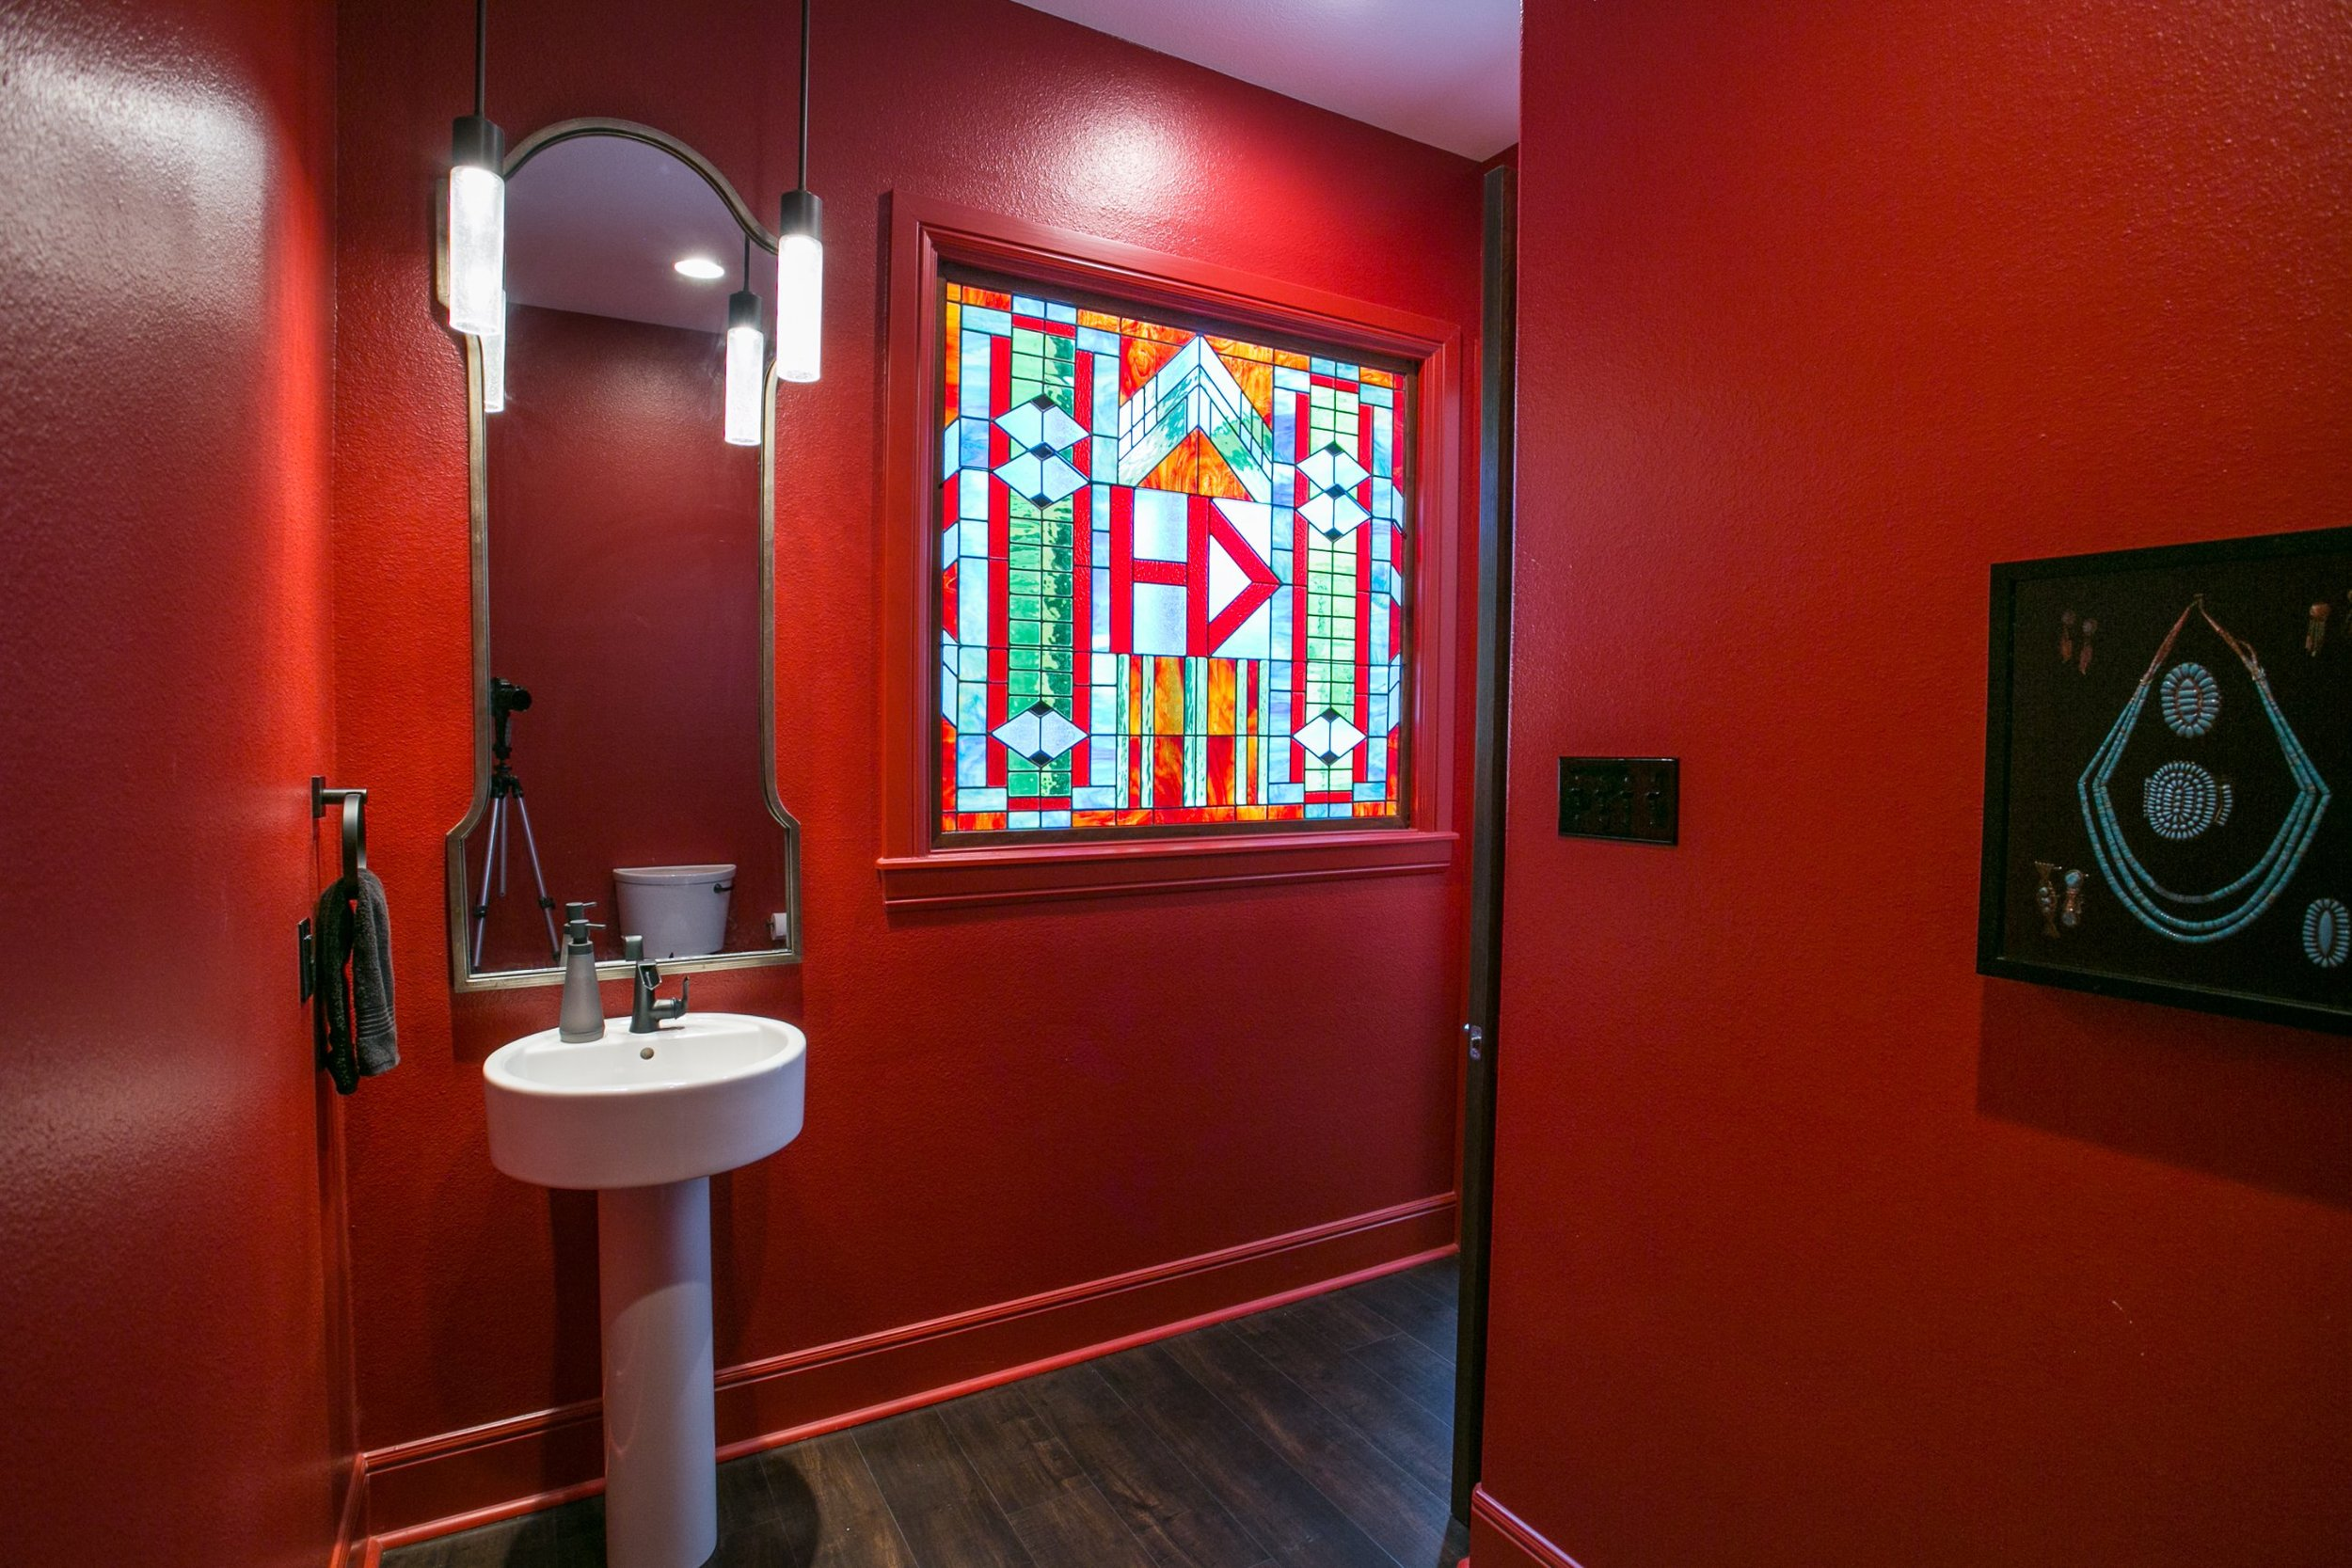 This custom stained-glass window, a gift to the husband, became the catalyst and focal point of the powder room and was given a prominent location in the plan in proximity of the front door. Also vintage turqoise jewelry framed in a black shadow box stands out on the red wall.